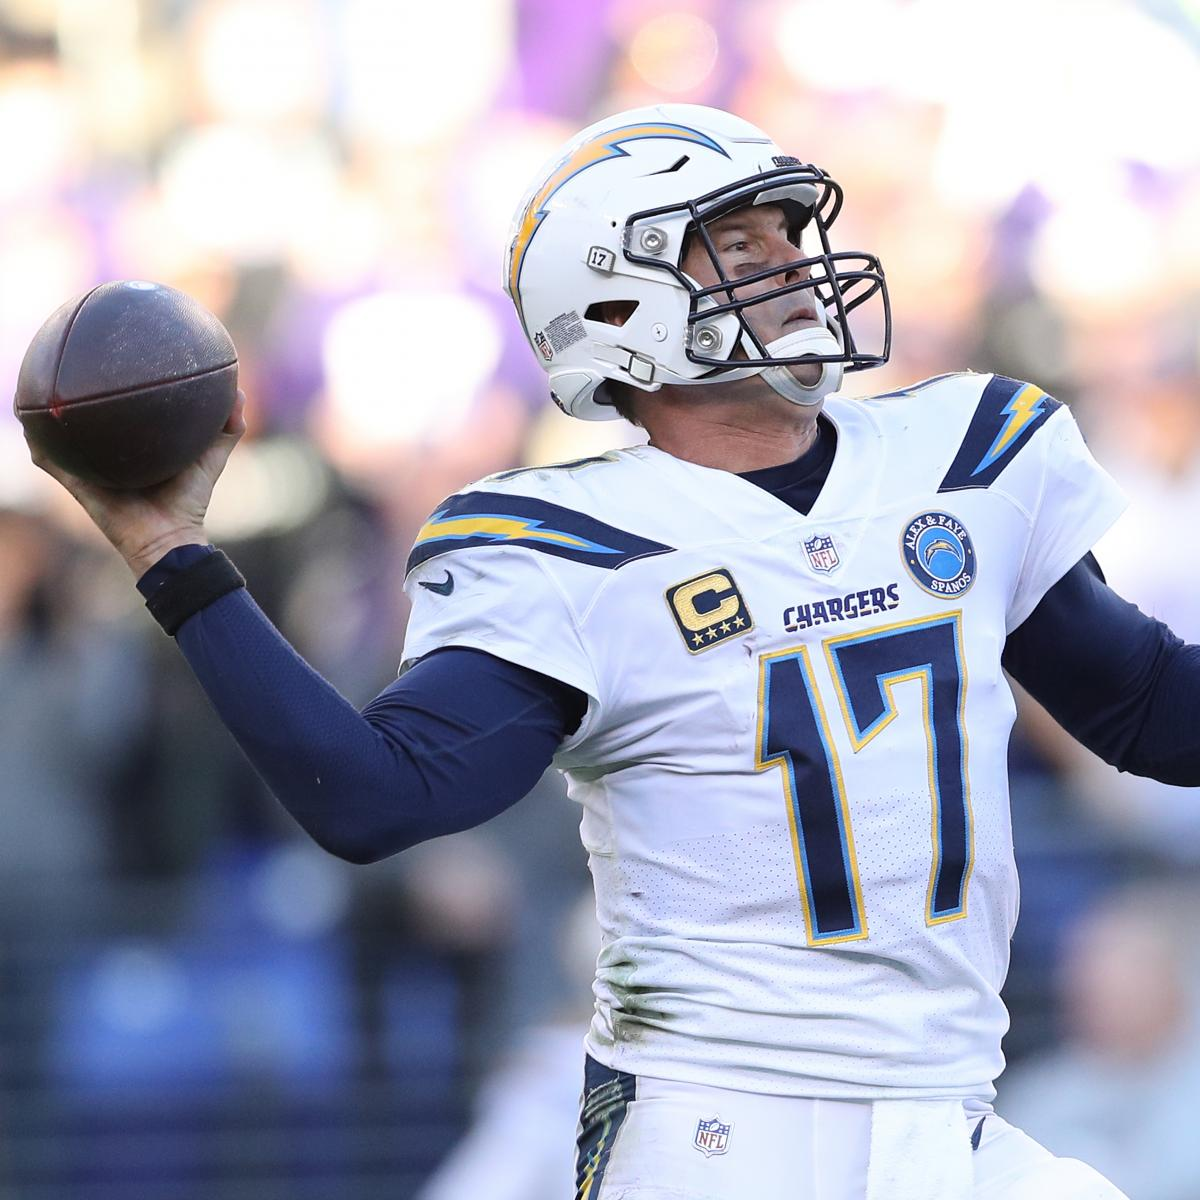 San Diego Chargers Game Schedule: Chargers Vs. Patriots: TV Schedule, Odds, Ticket Info